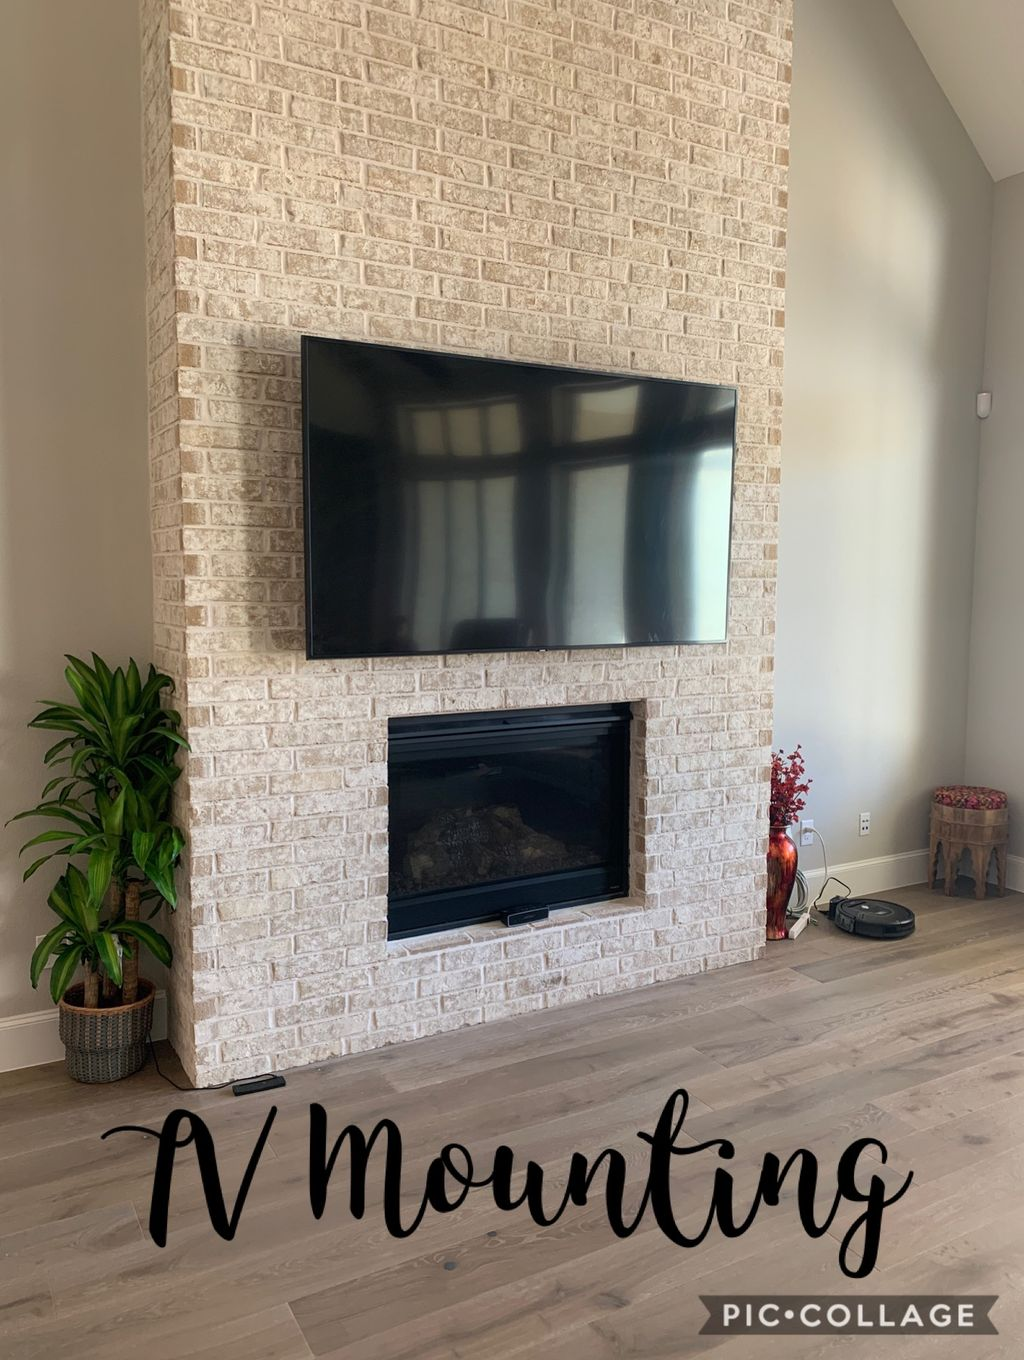 80 inch TV Mount on Rock Fireplace